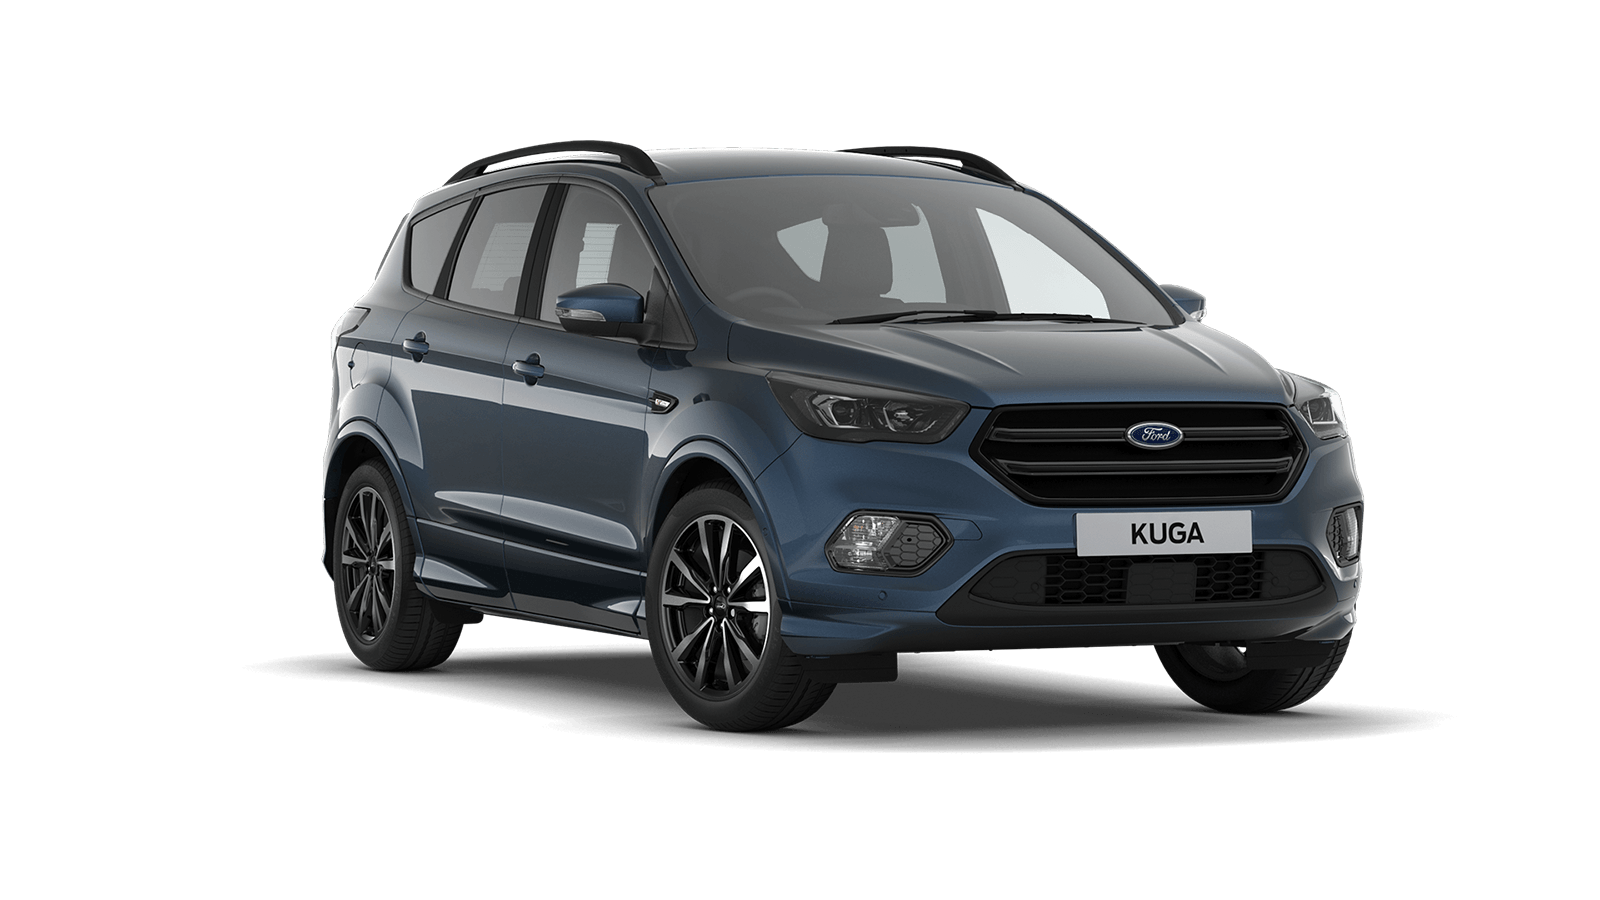 Ford Kuga ST-Line 1.5L TDCi 120PS at Browne & Day